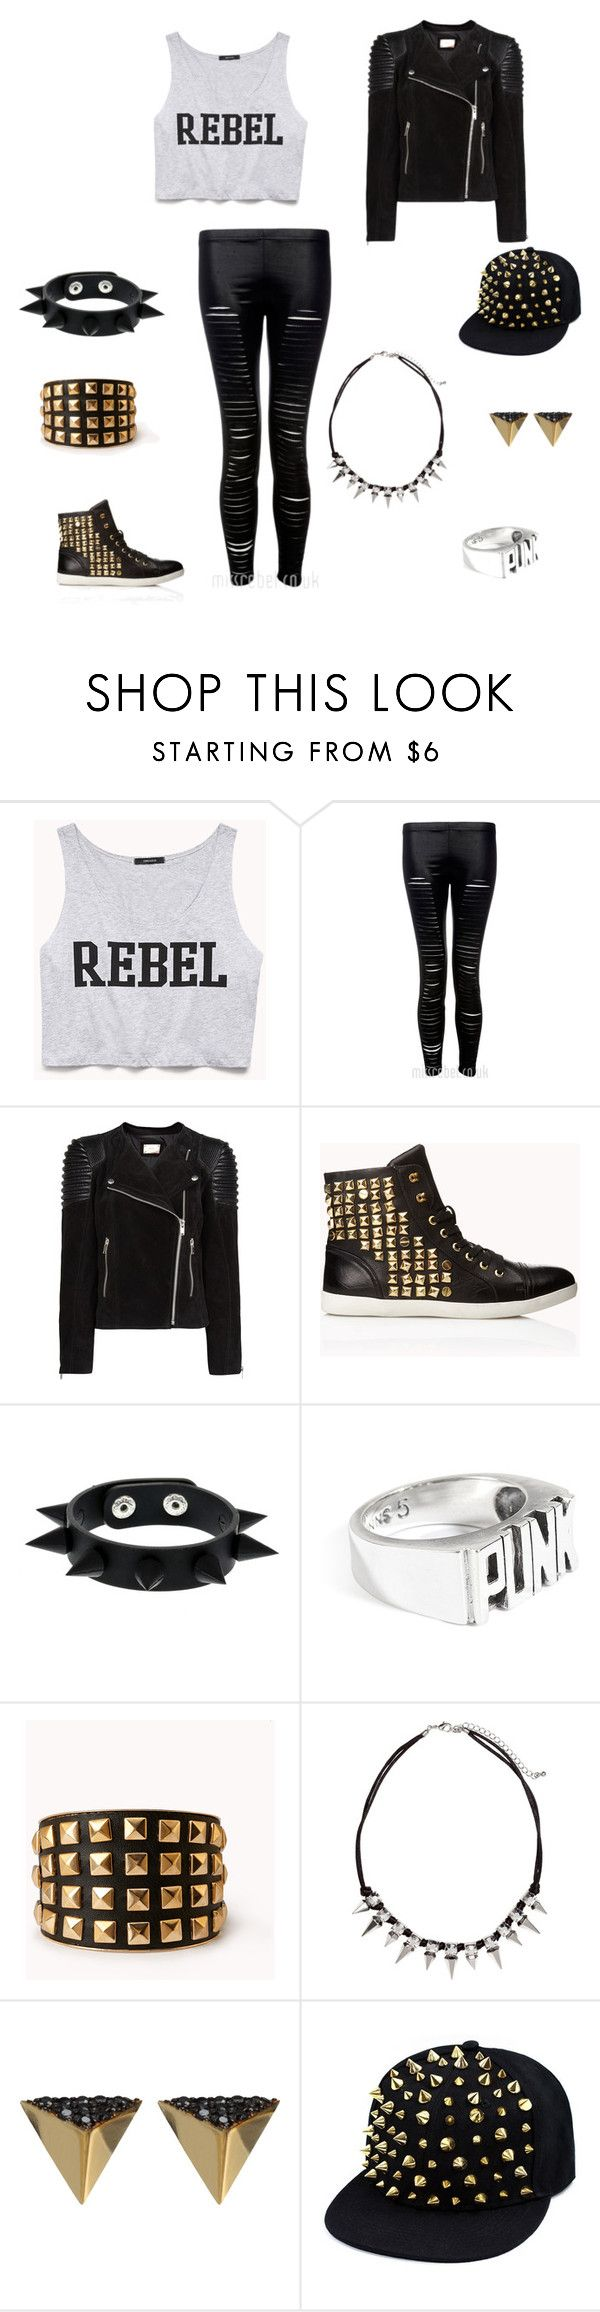 """""""Punk rebel outfit."""" by doctorwho28929 ❤ liked on Polyvore featuring Forever 21, MANGO, Tom Binns, H&M, Ileana Makri, women's clothing, women, female, woman and misses"""